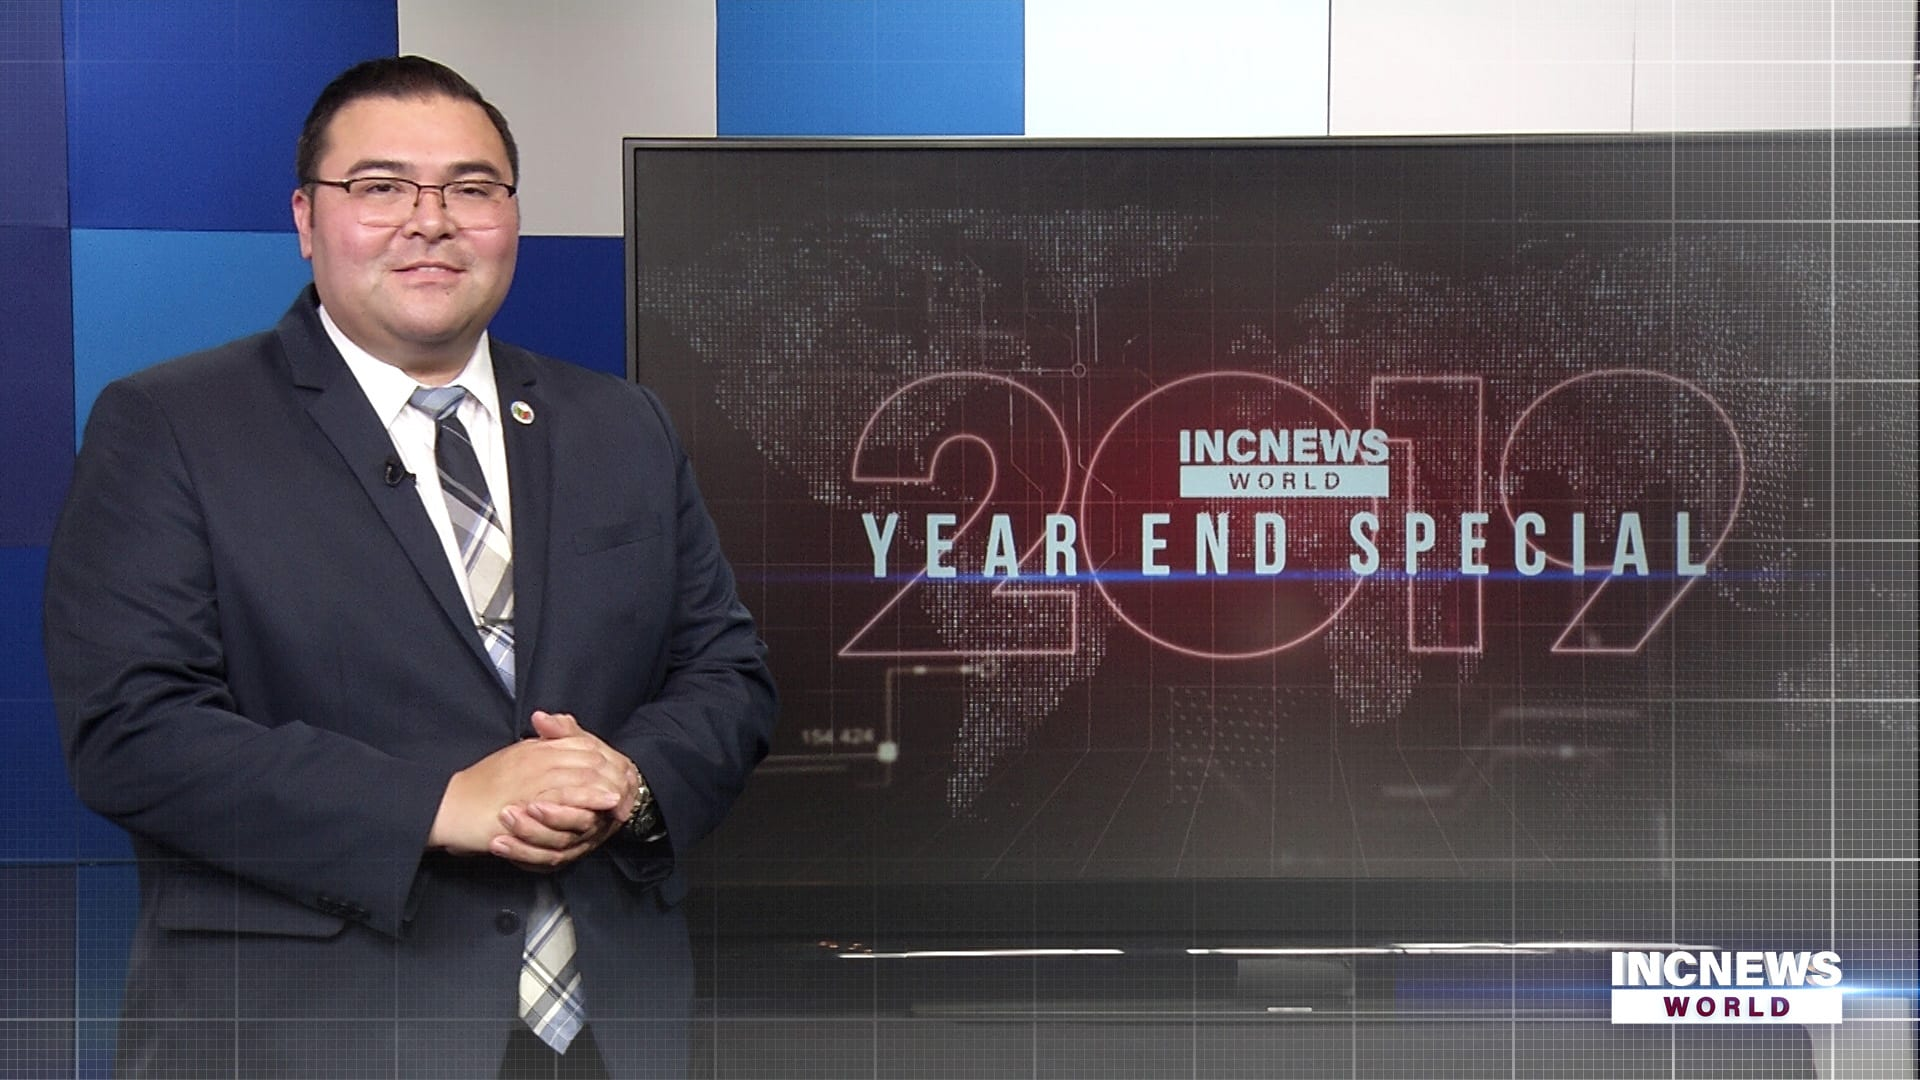 INC News World Year End Special